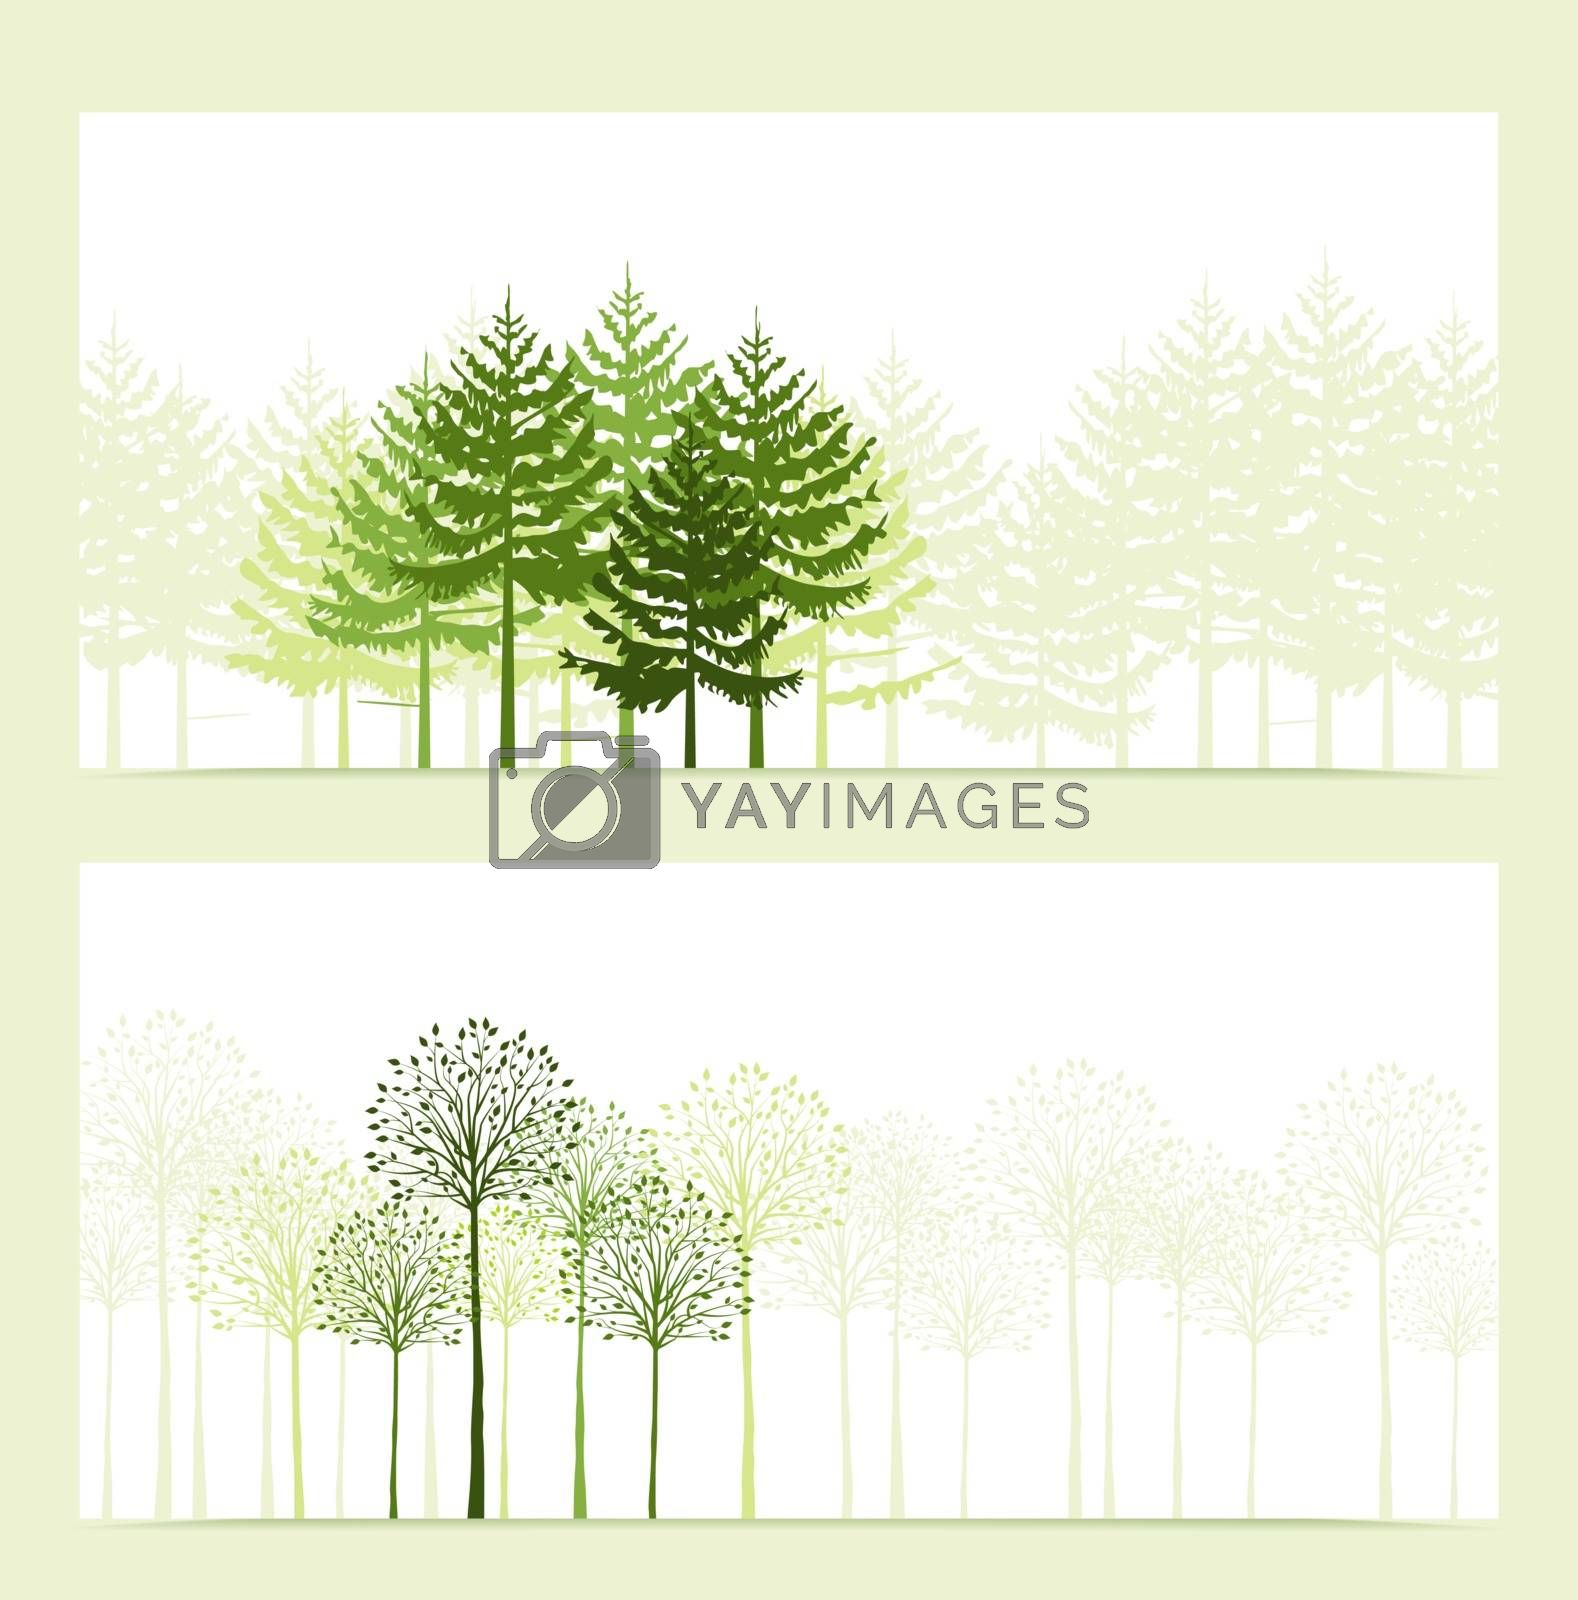 Two banners with the background landscape with trees